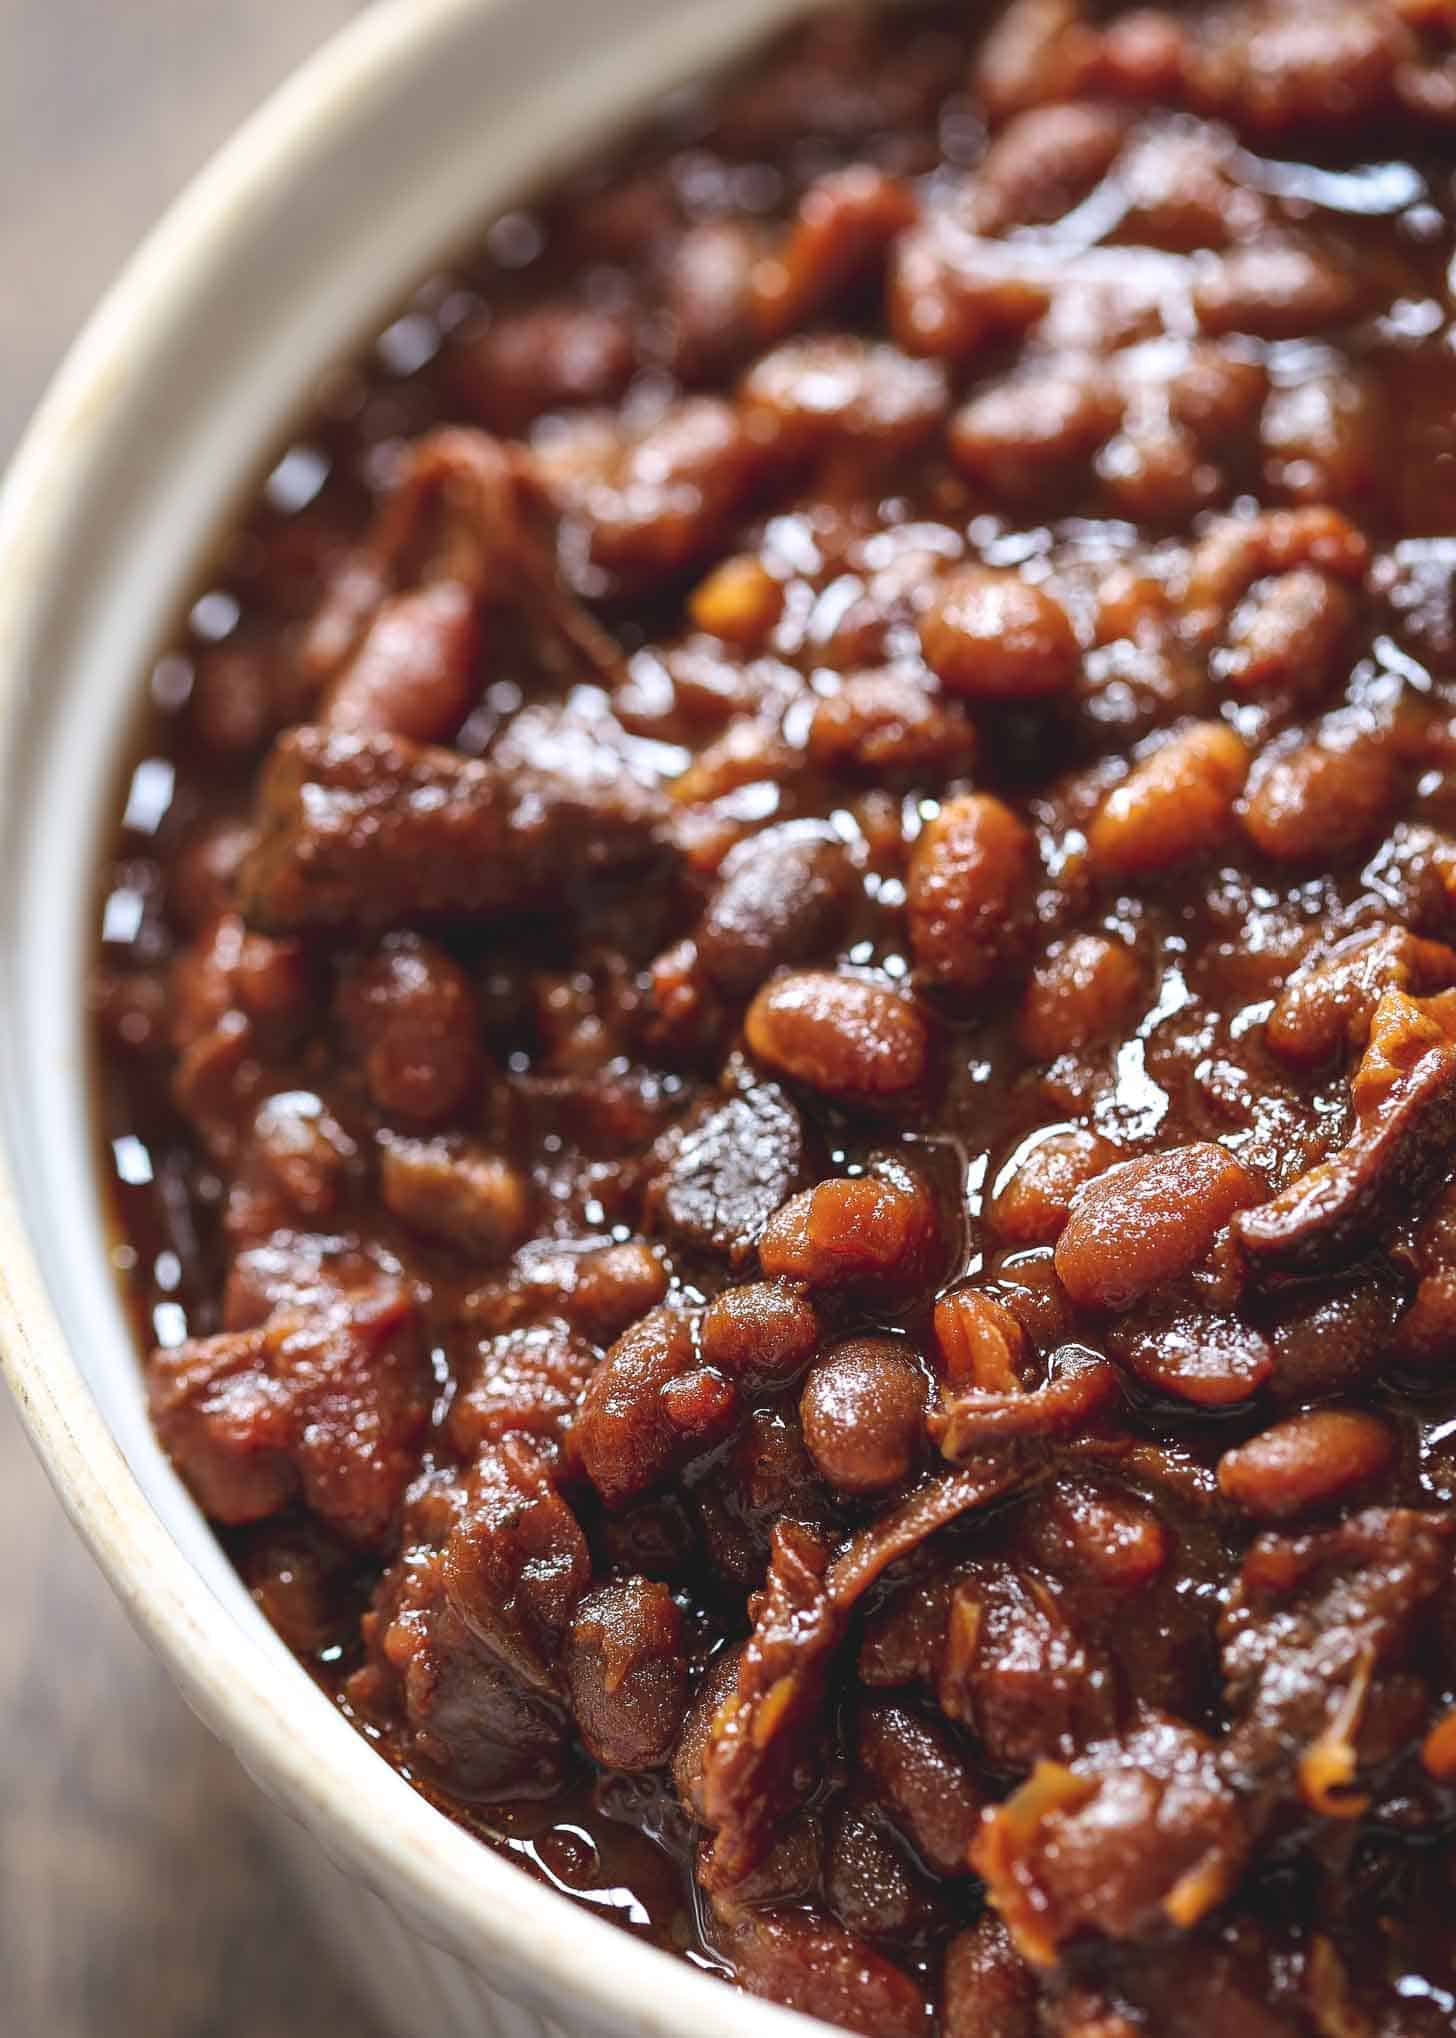 Baked Beans in a white bowl